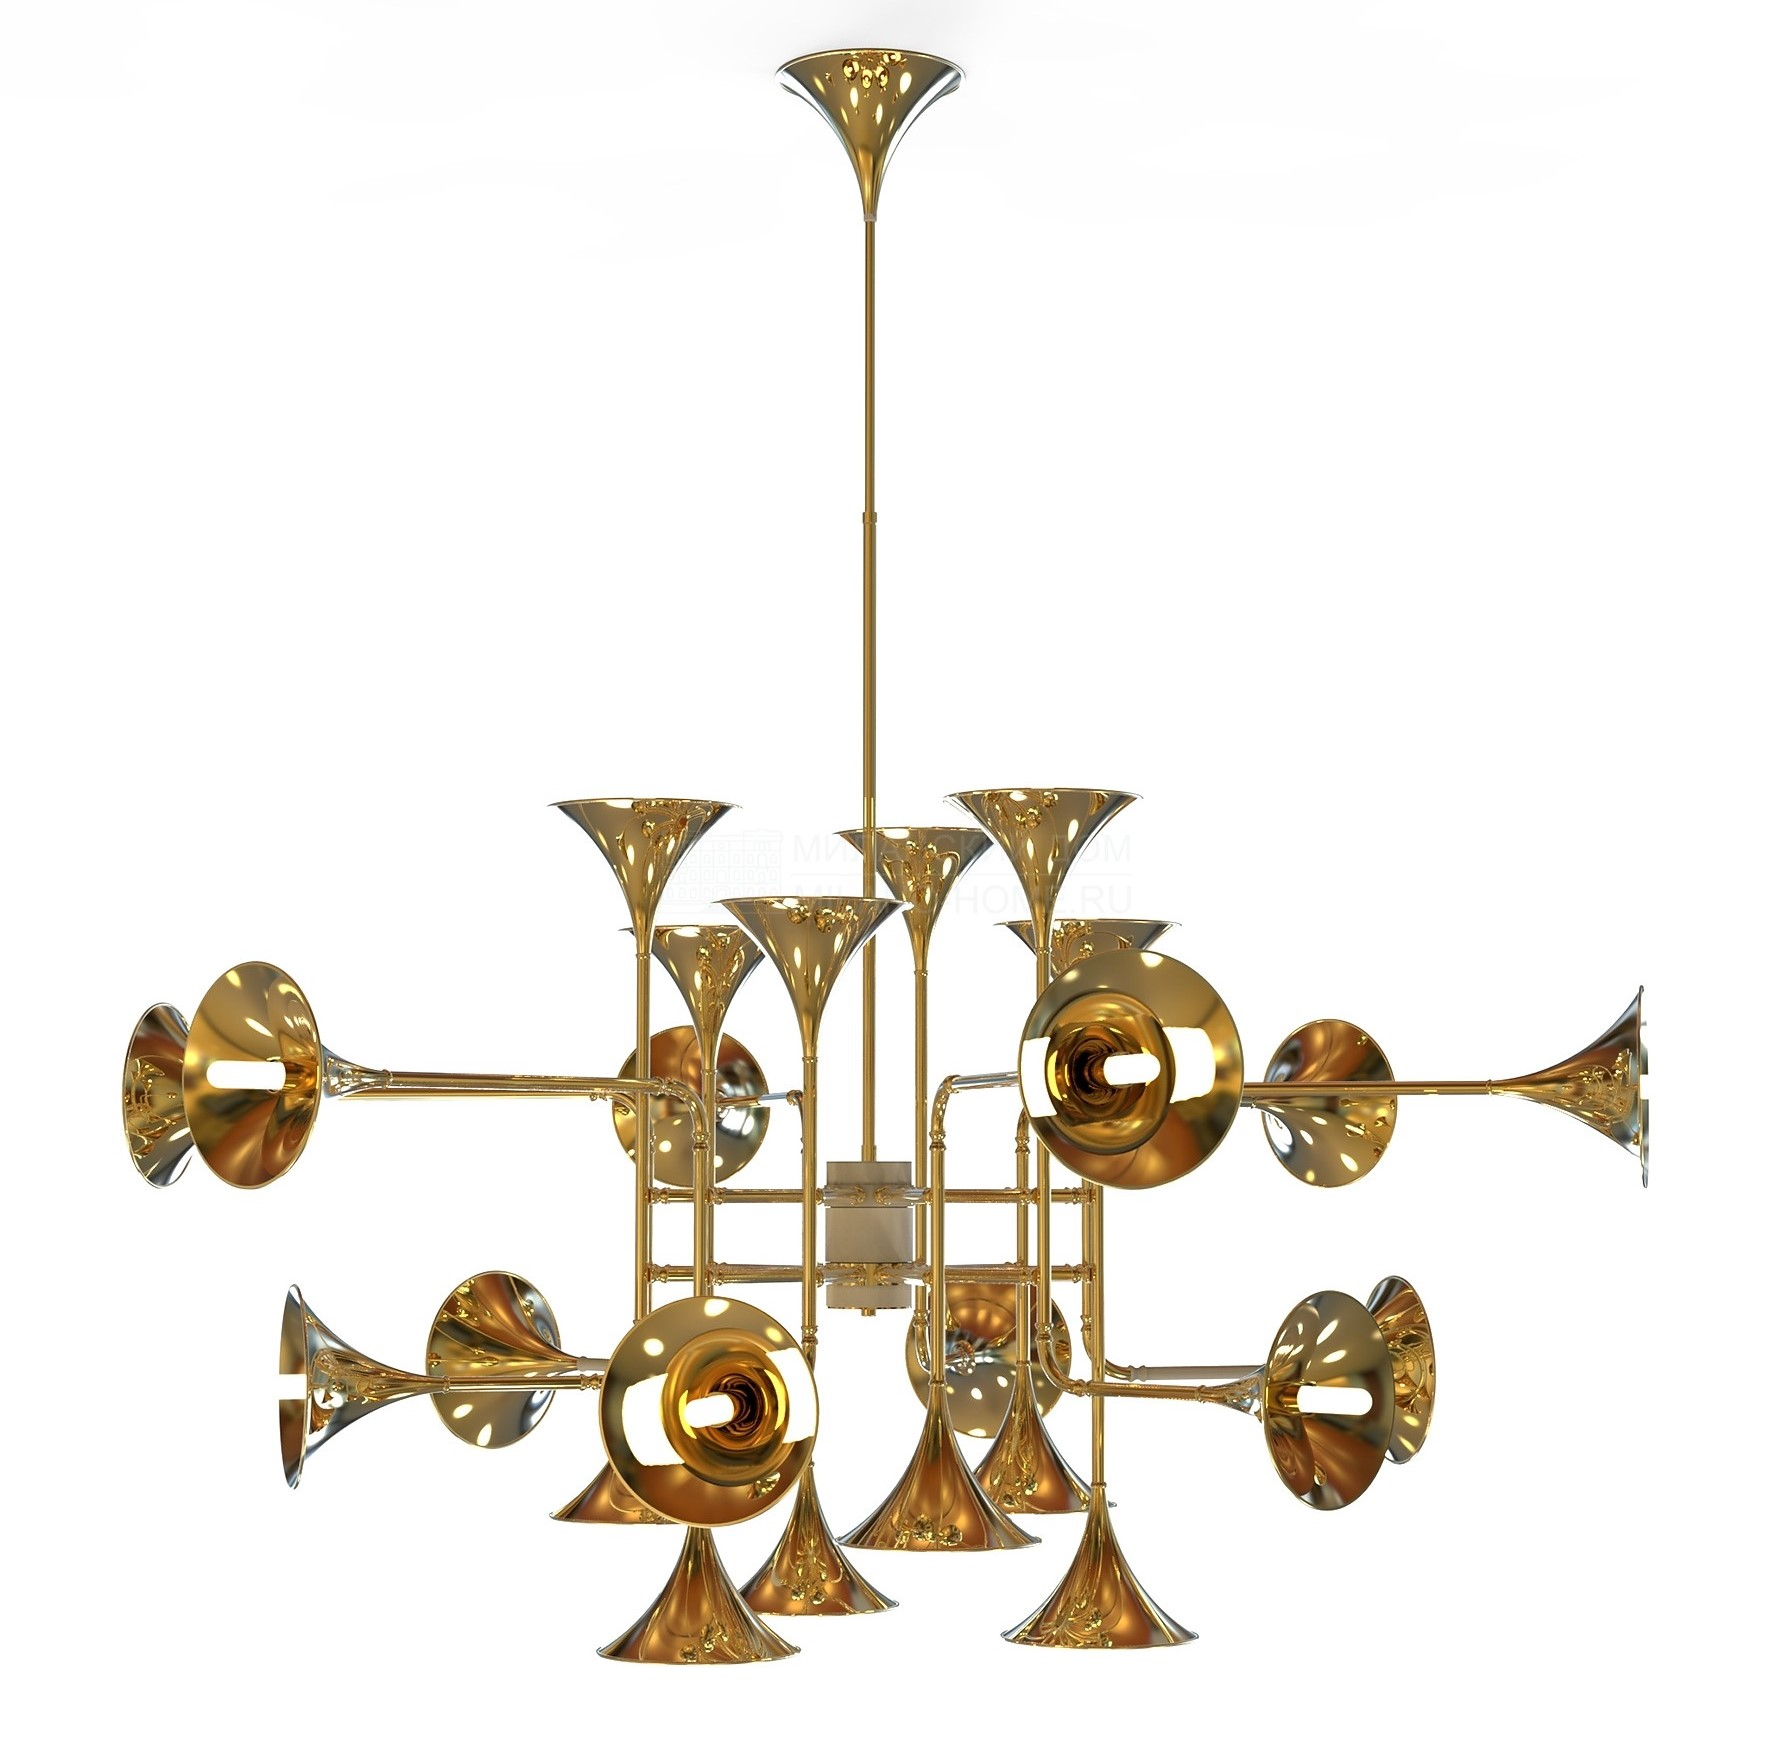 Have You Meet These Amazing Suspension Lamps Let Us Introduce To You 3 suspension lamps Have You Meet These Amazing Suspension Lamps? Let Us Introduce To You Have You Meet These Amazing Suspension Lamps Let Us Introduce To You 3